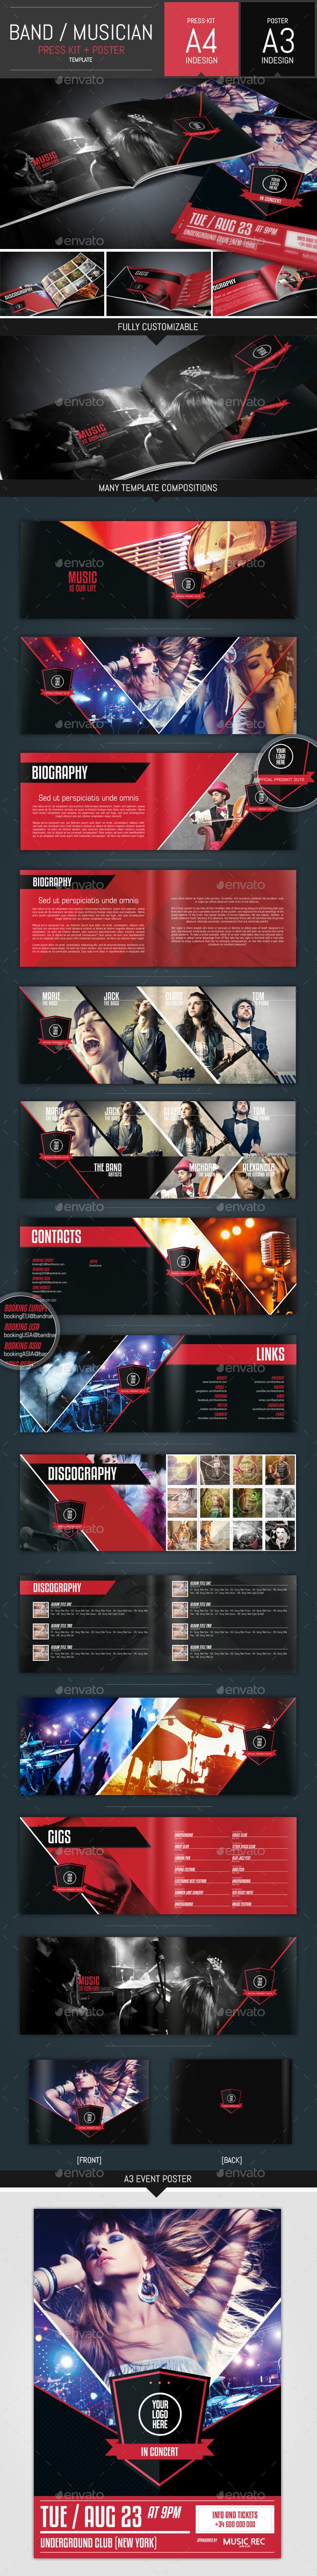 Music Band Pack Presskit Poster Template Poster Template Music Bands Print Design Template